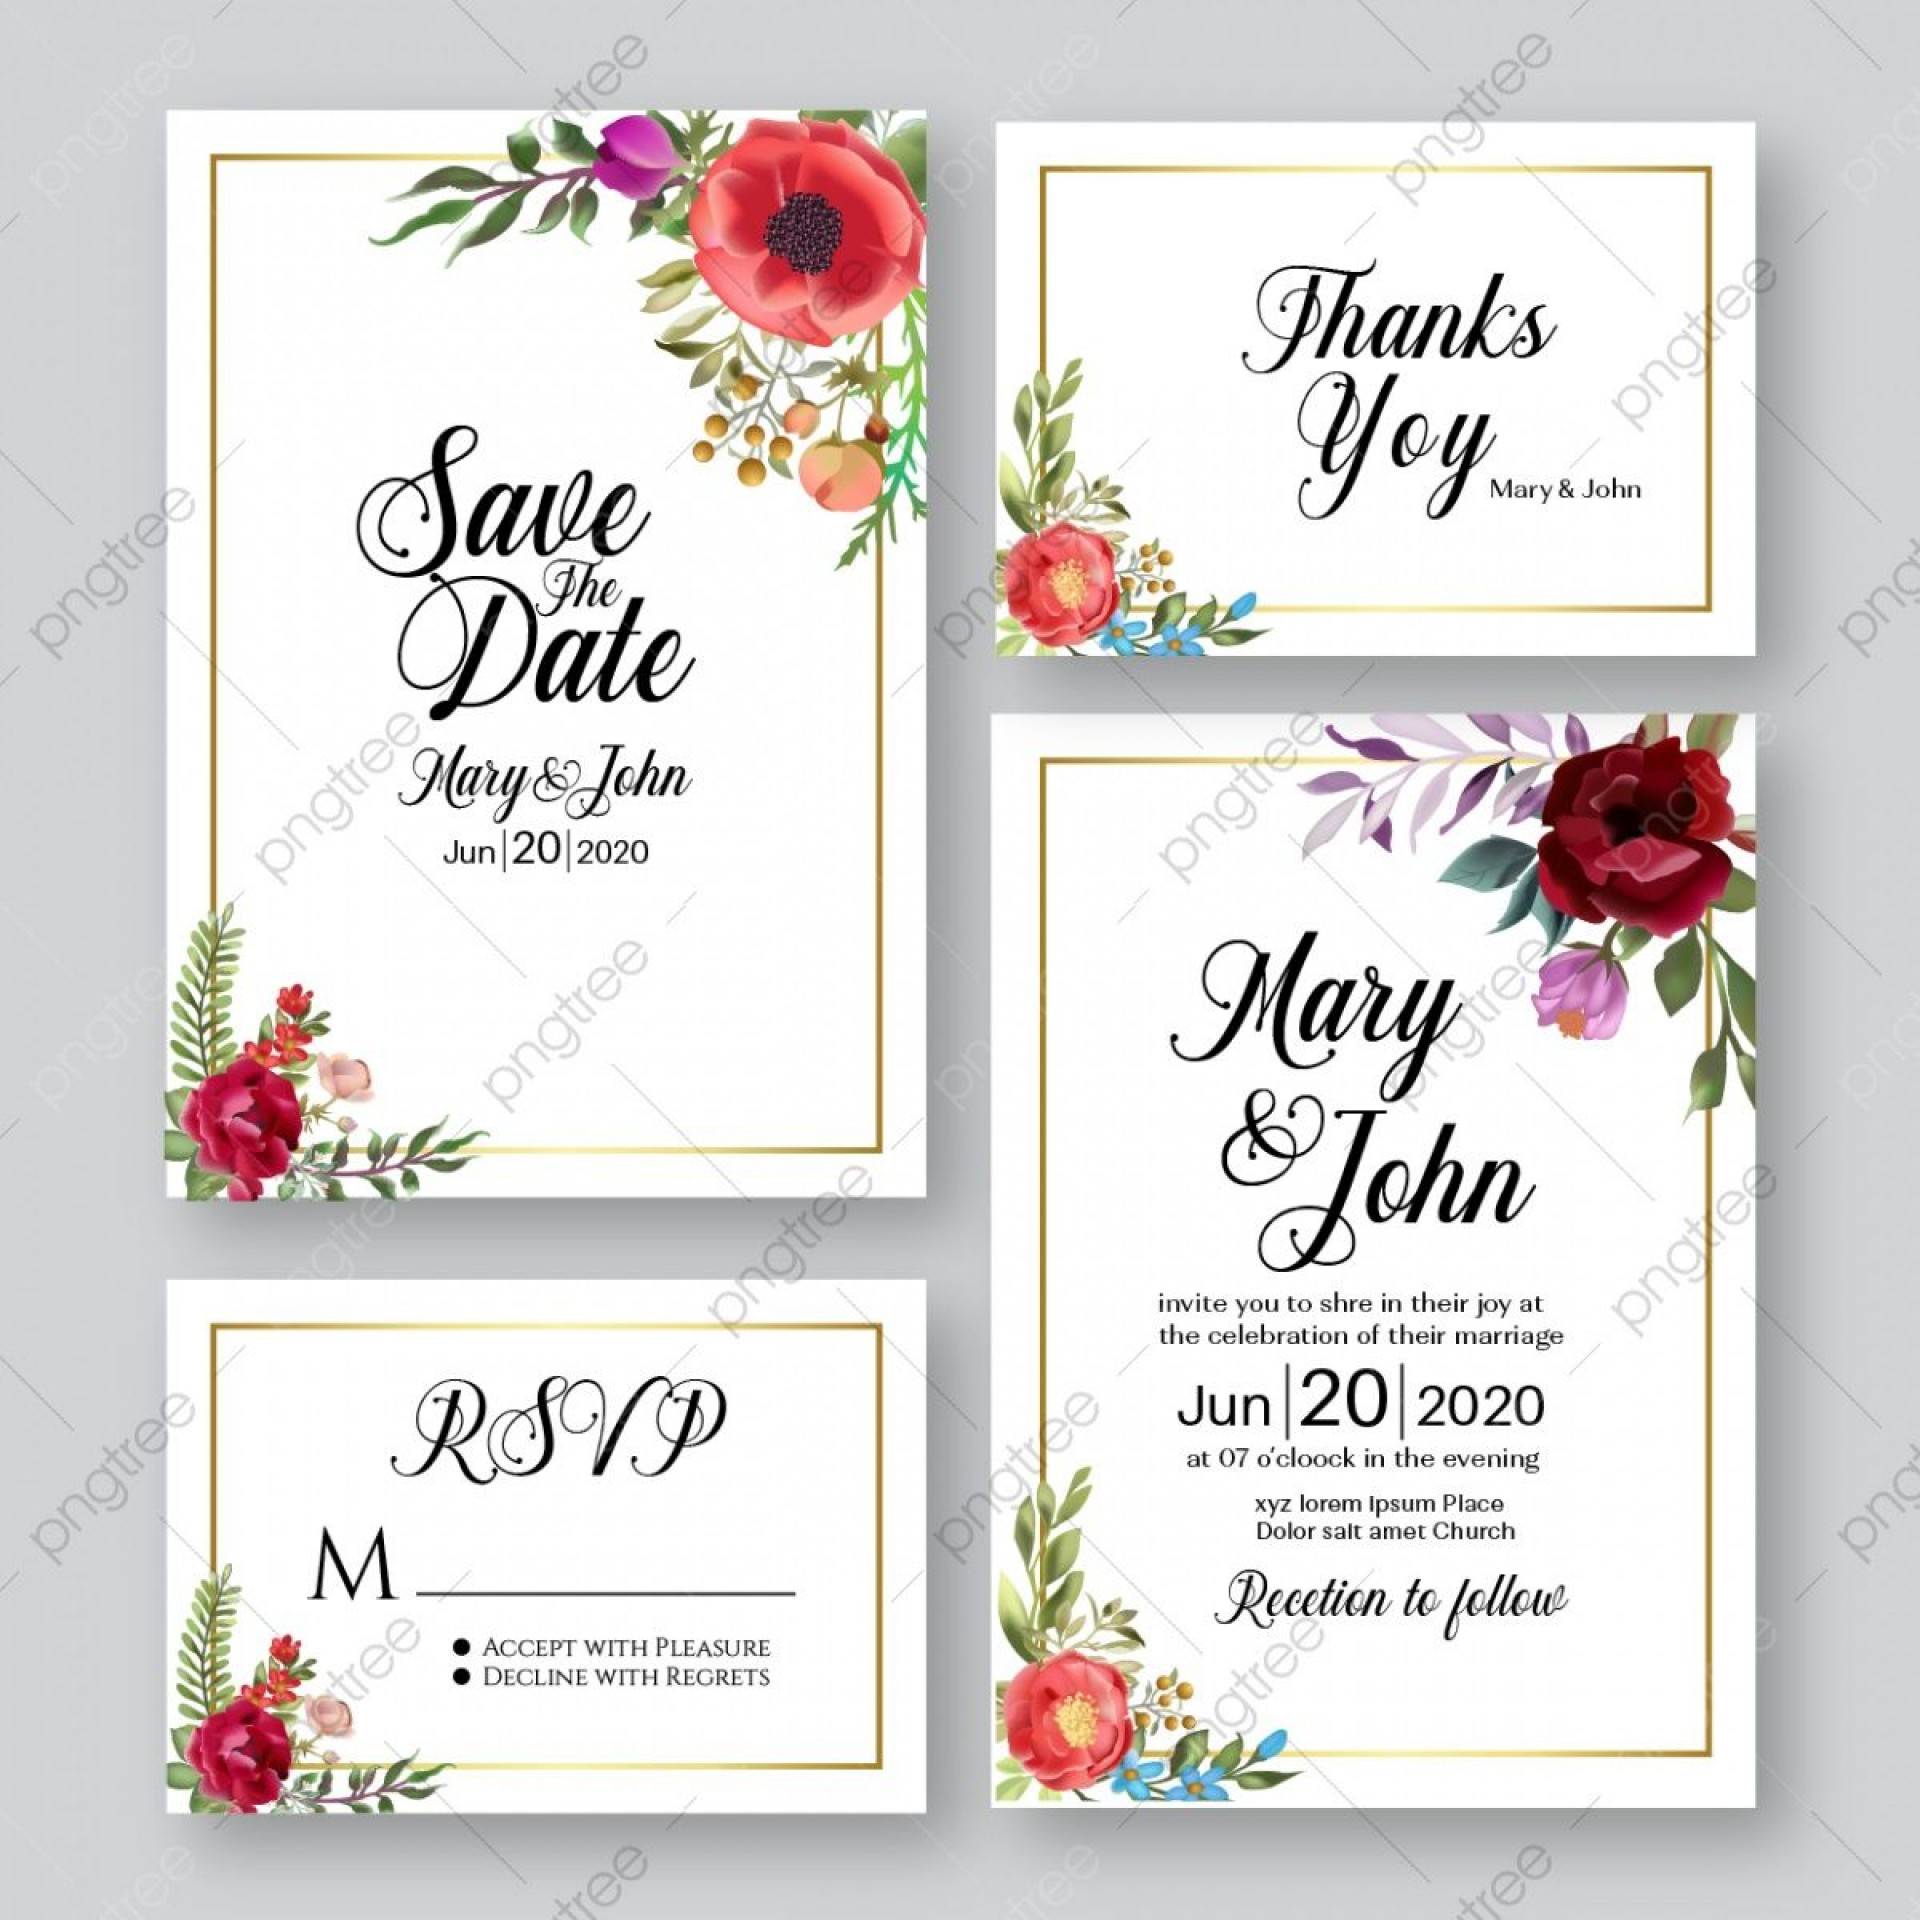 008 Breathtaking Free Download Invitation Card Format Design  Birthday Tamil Marriage In Word1920